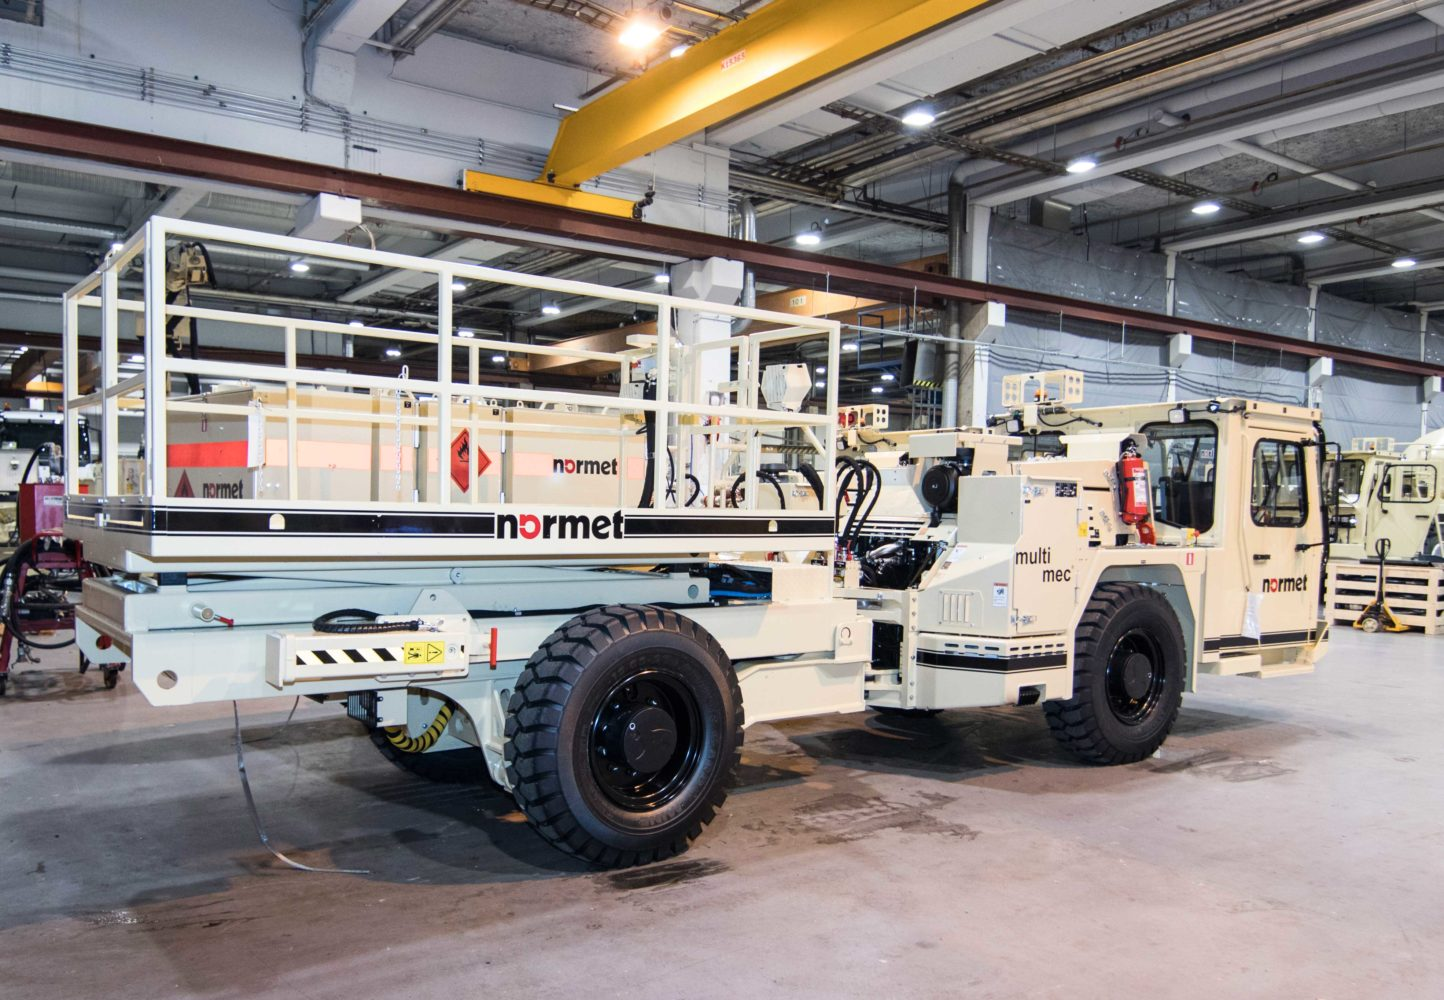 Multimec MF 100 with lifting platform